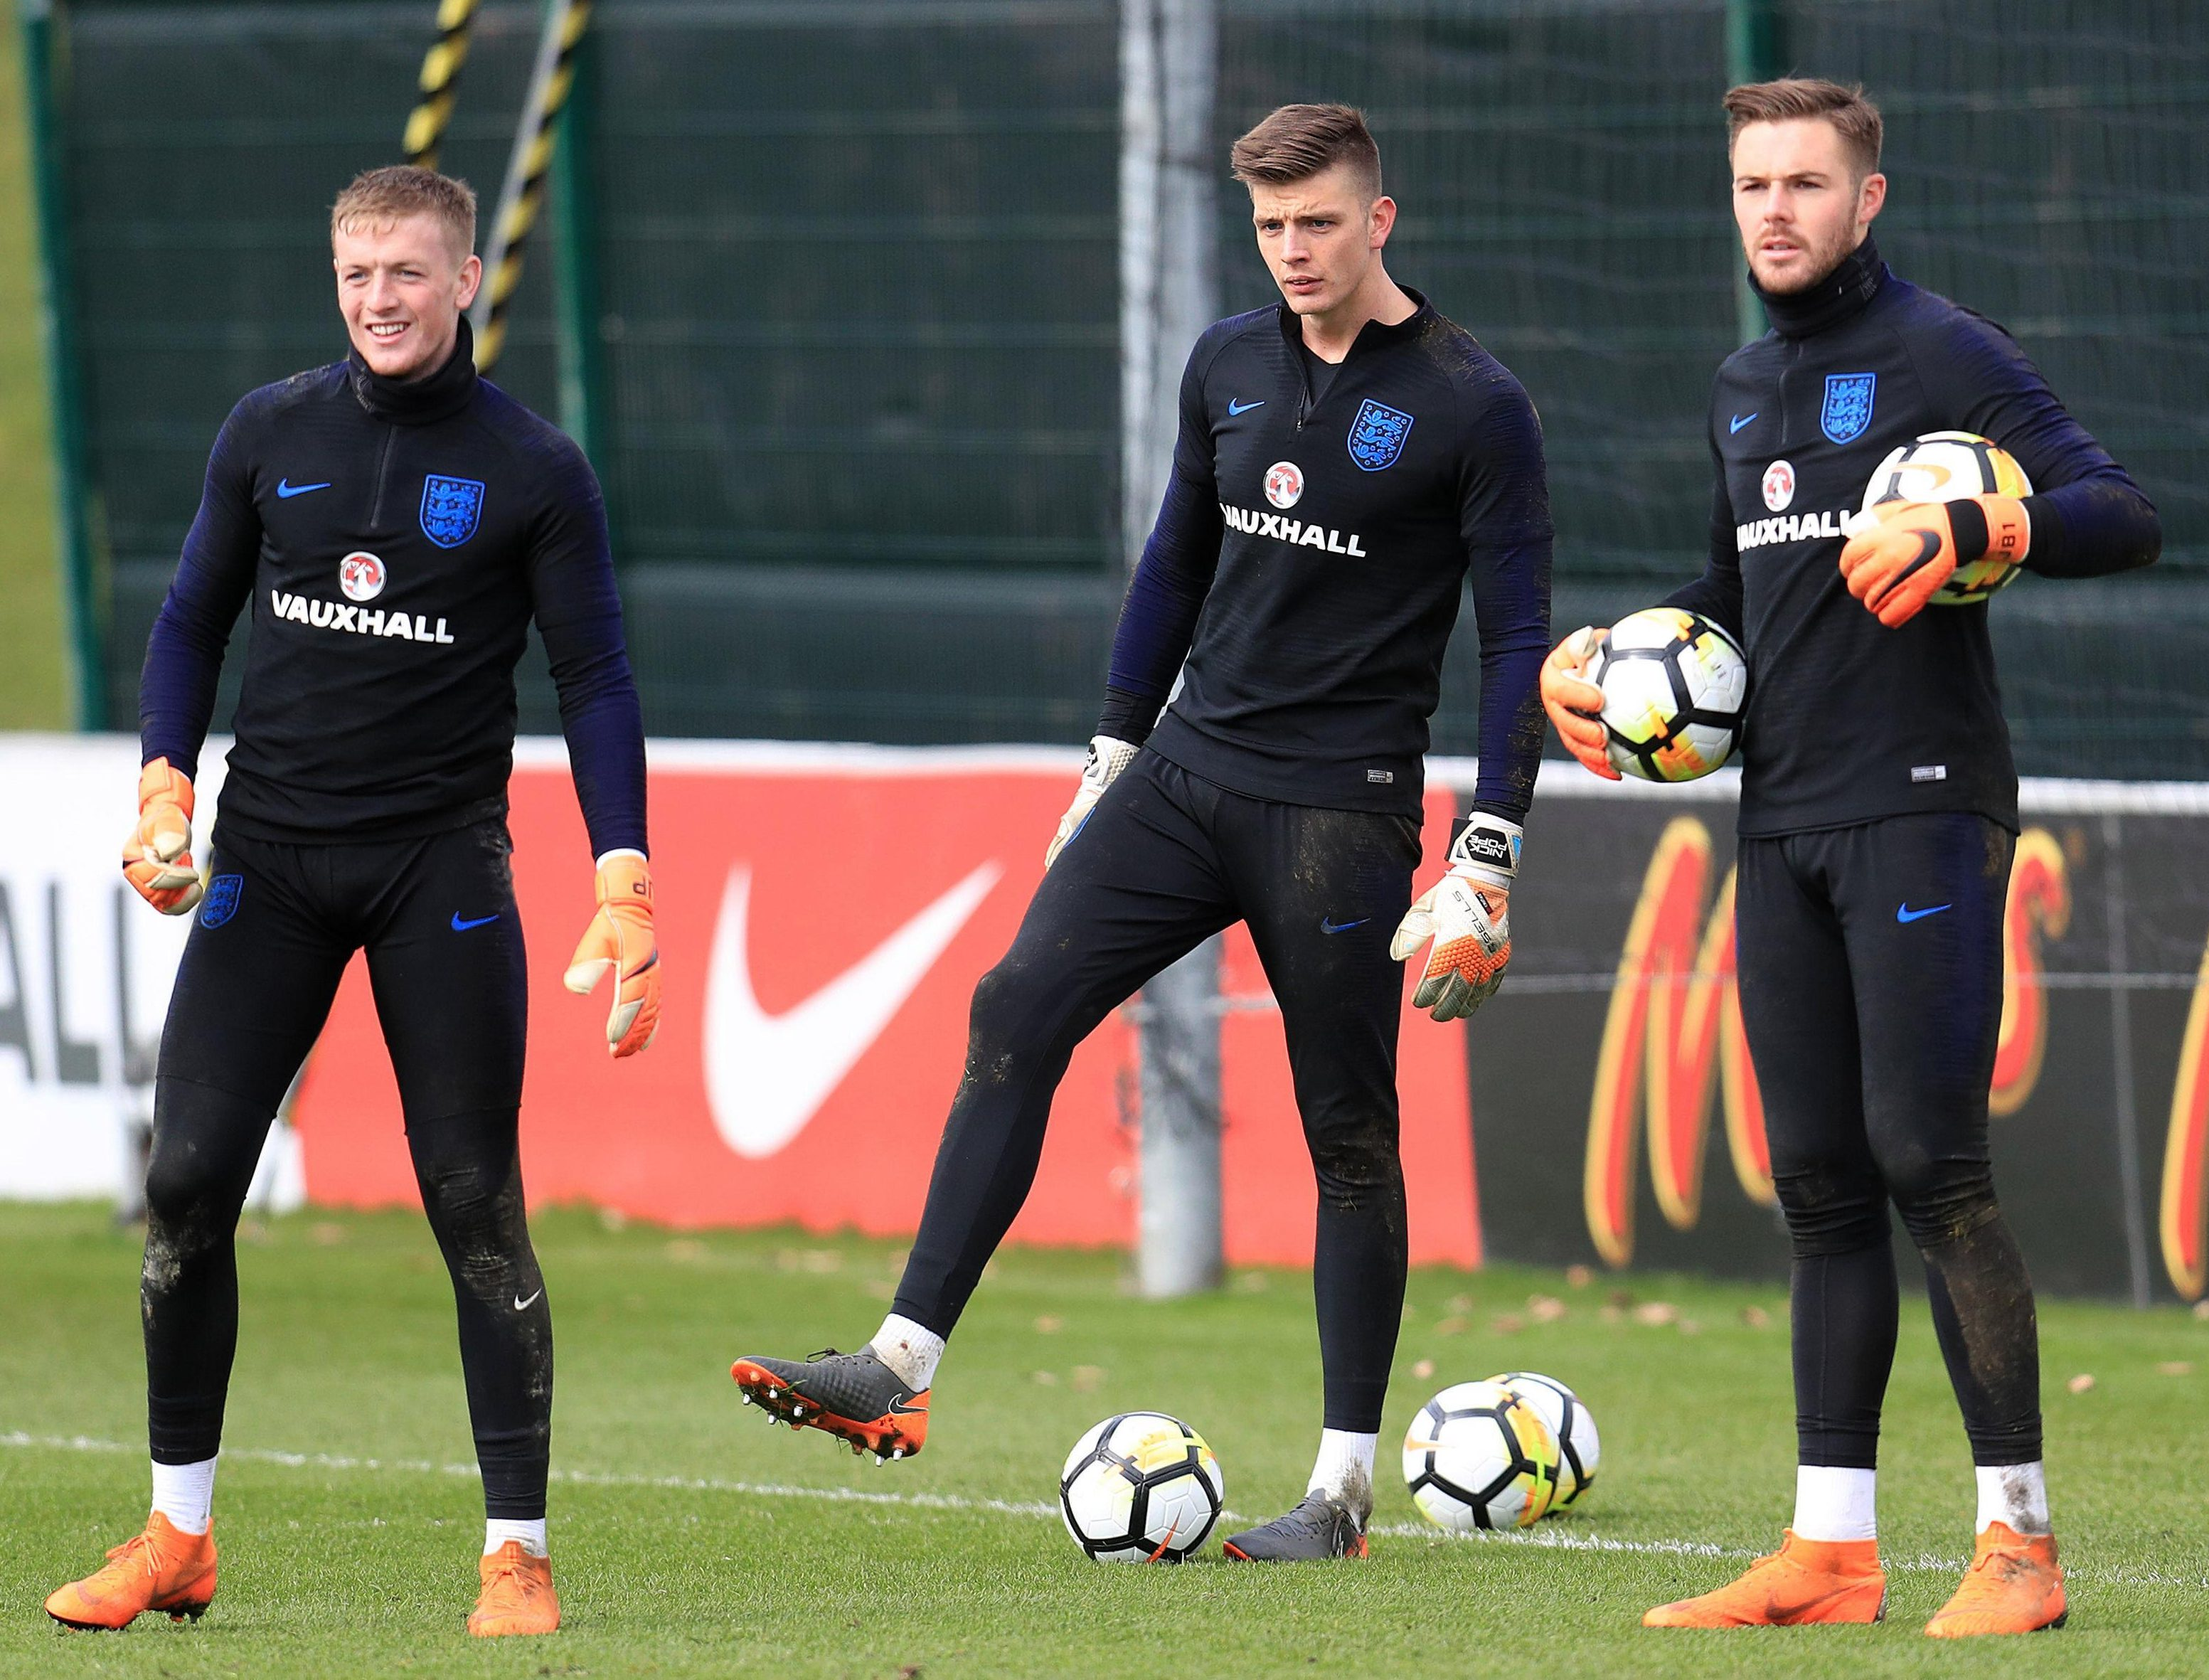 Nick Pope is hoping to upstage fellow keeper contenders Jordan Pickford and Jack Butland if he gets the chance in the two England friendlies